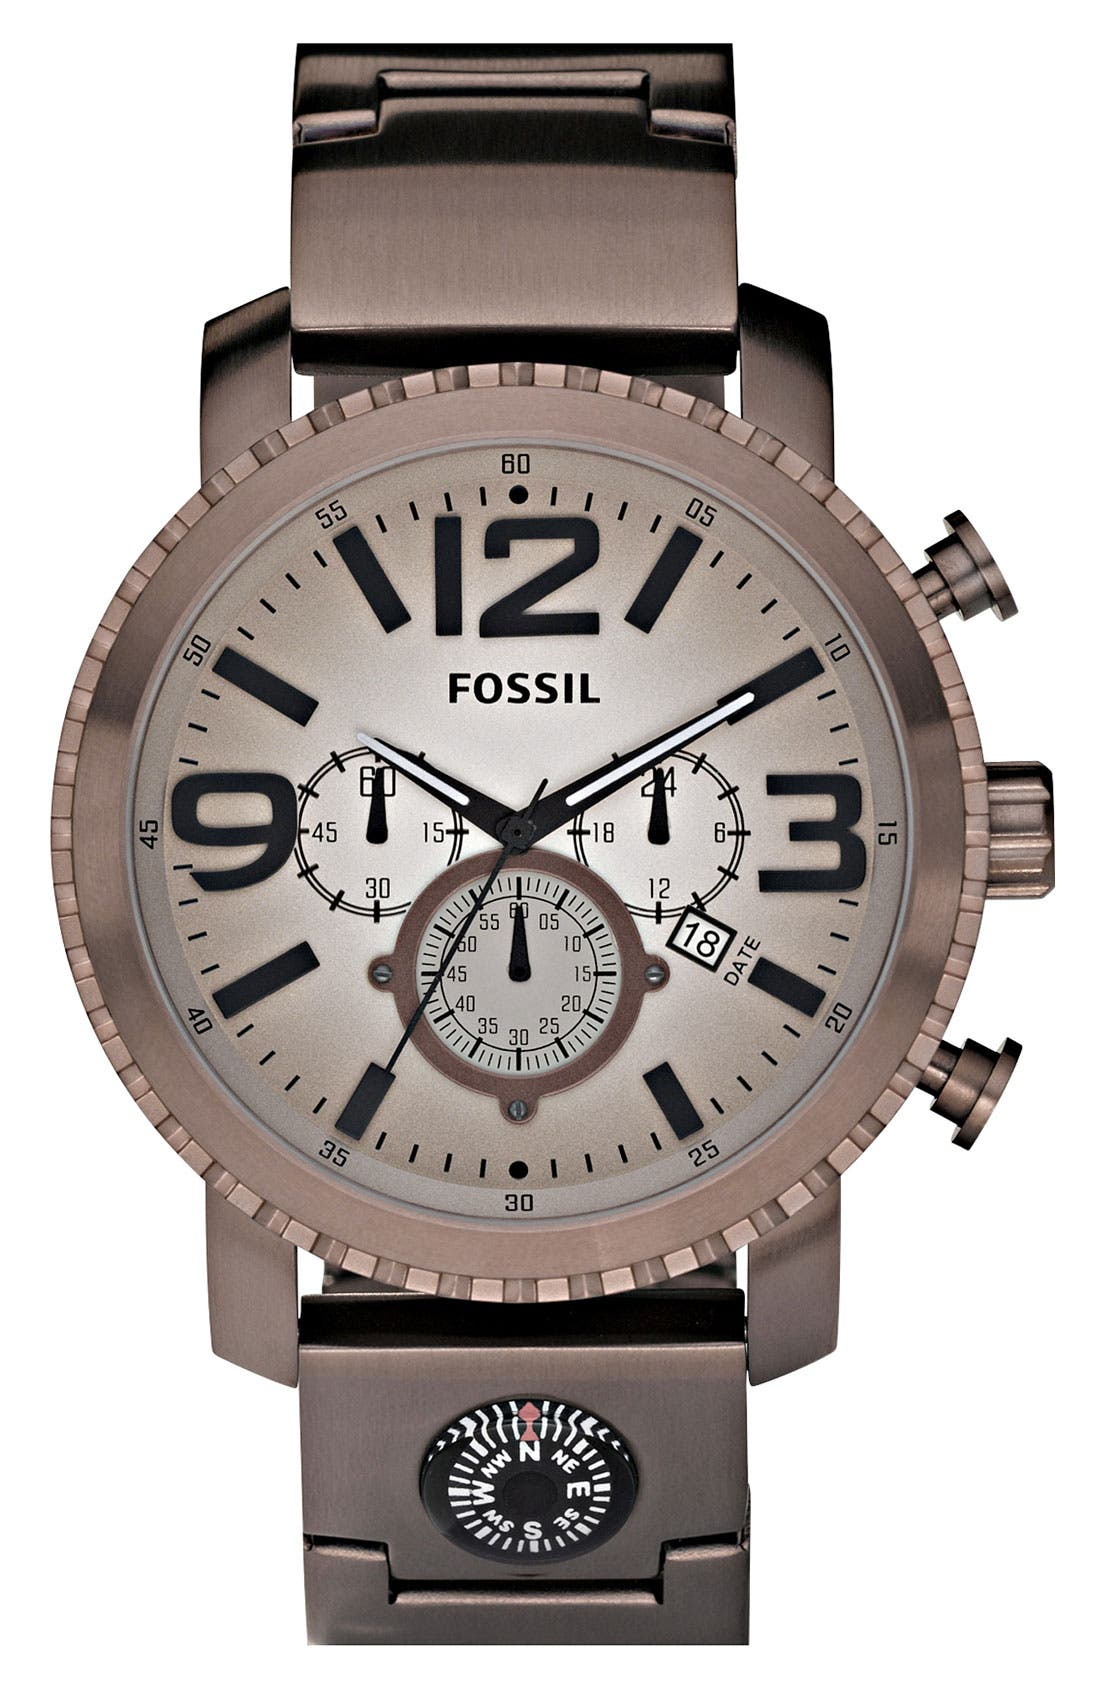 Main Image - Fossil 'Gage' Chronograph Compass Watch, 49mm